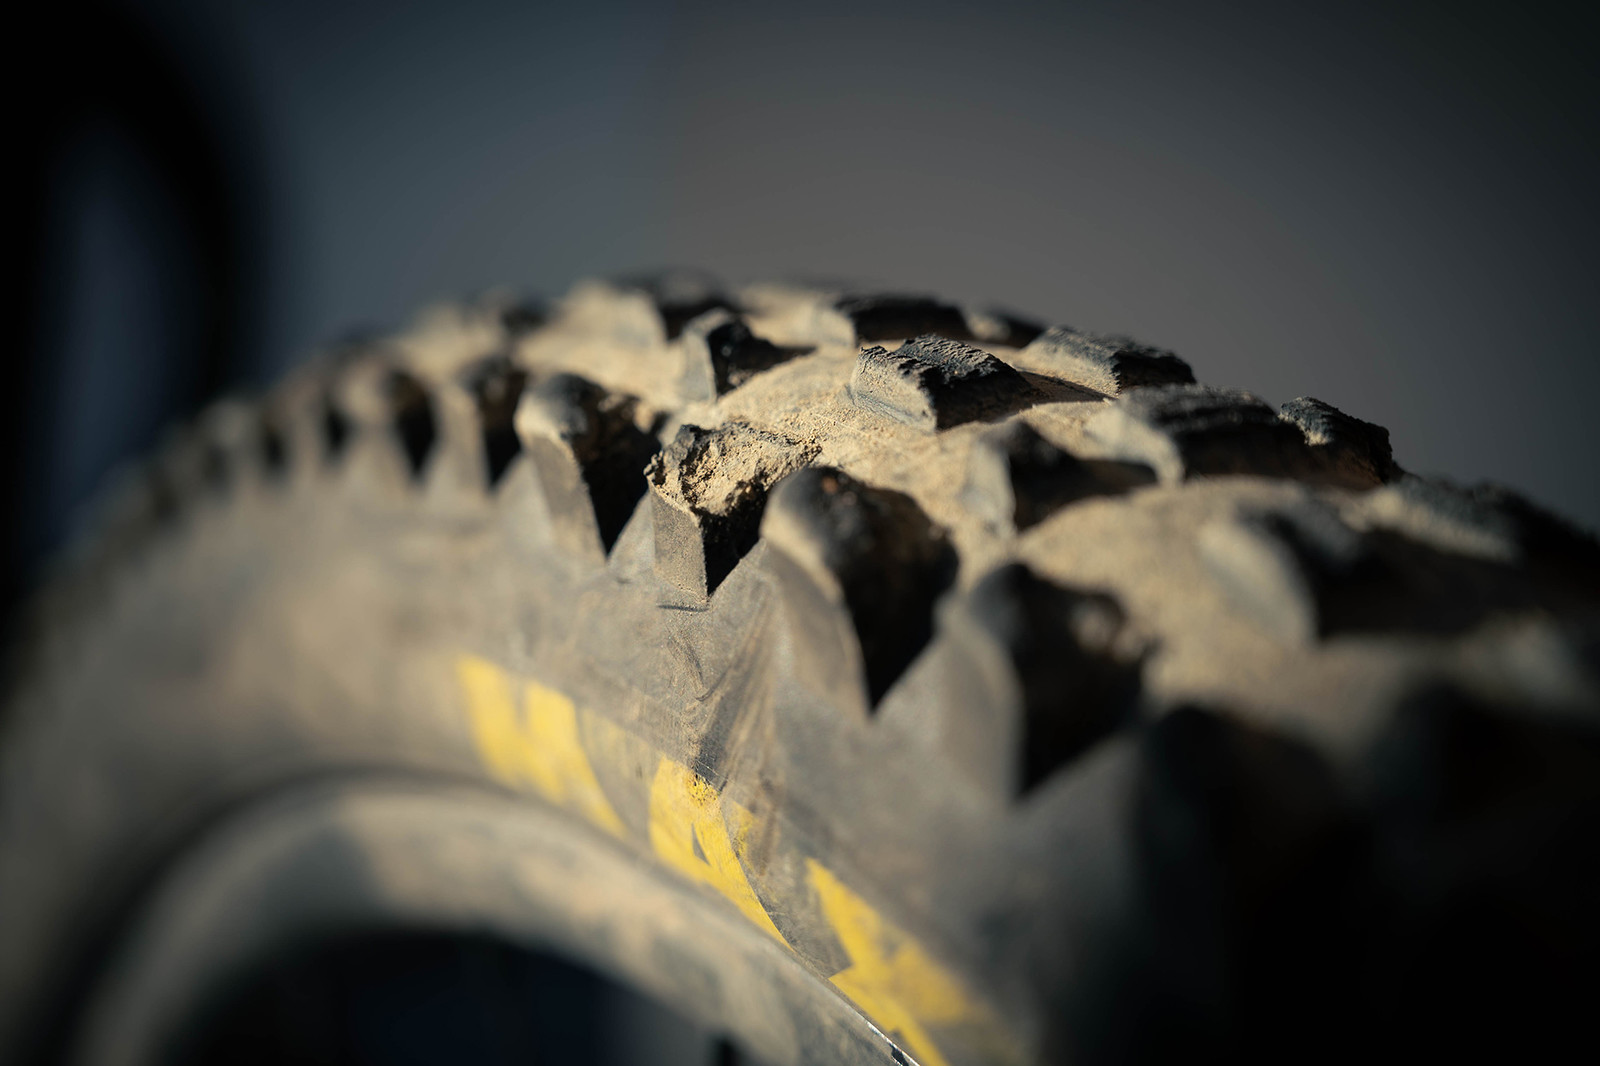 We haven't figured out a way to protect tires yet, but don't let that stop you from shredding!